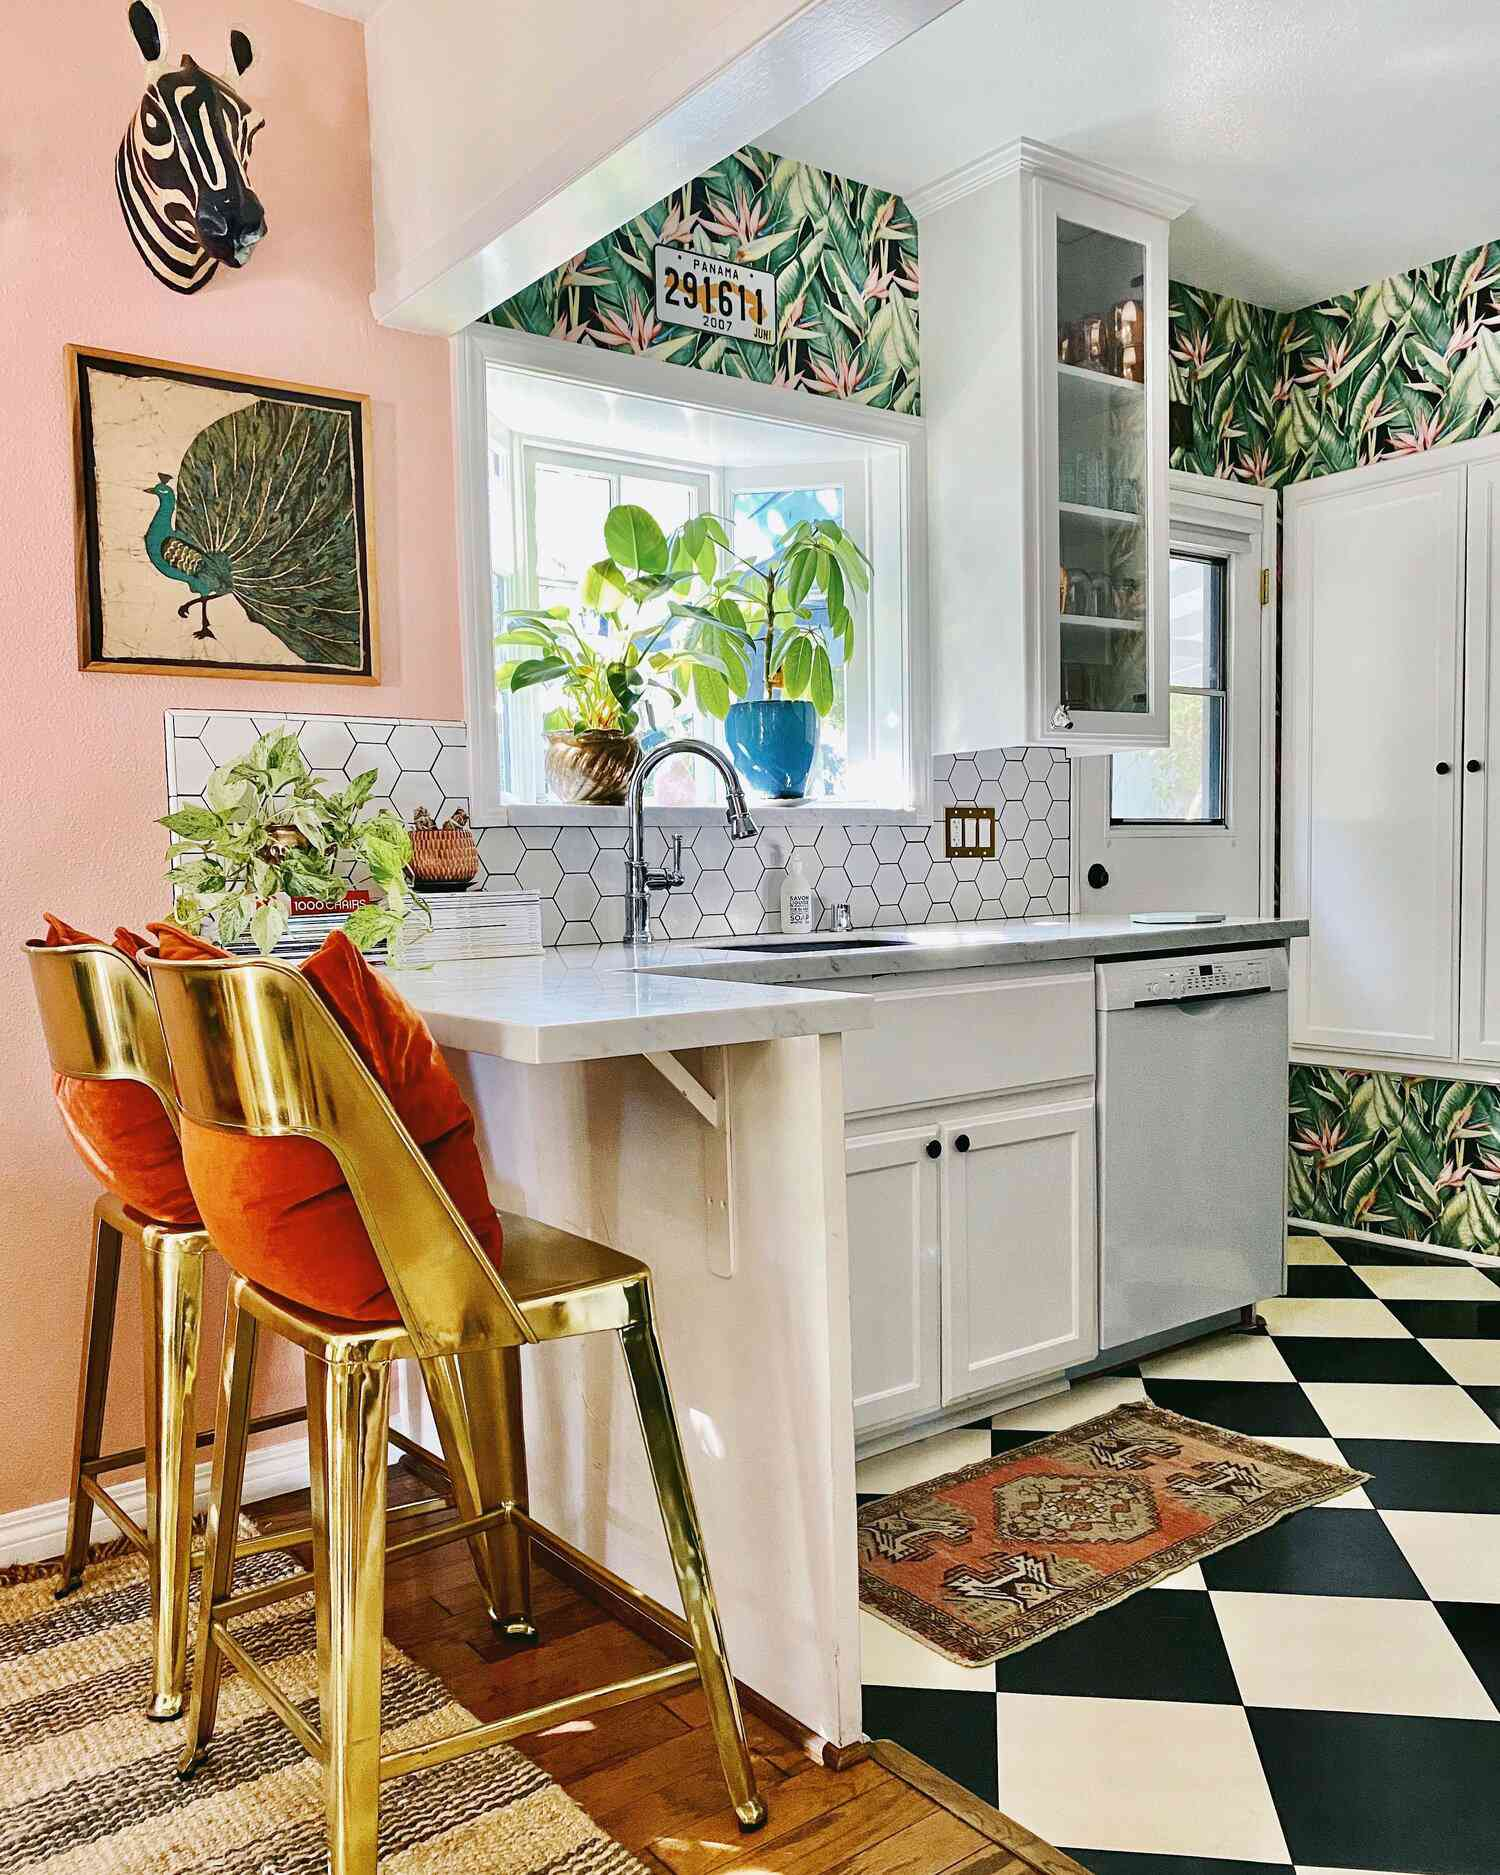 Pink kitchen with palm wallpaper